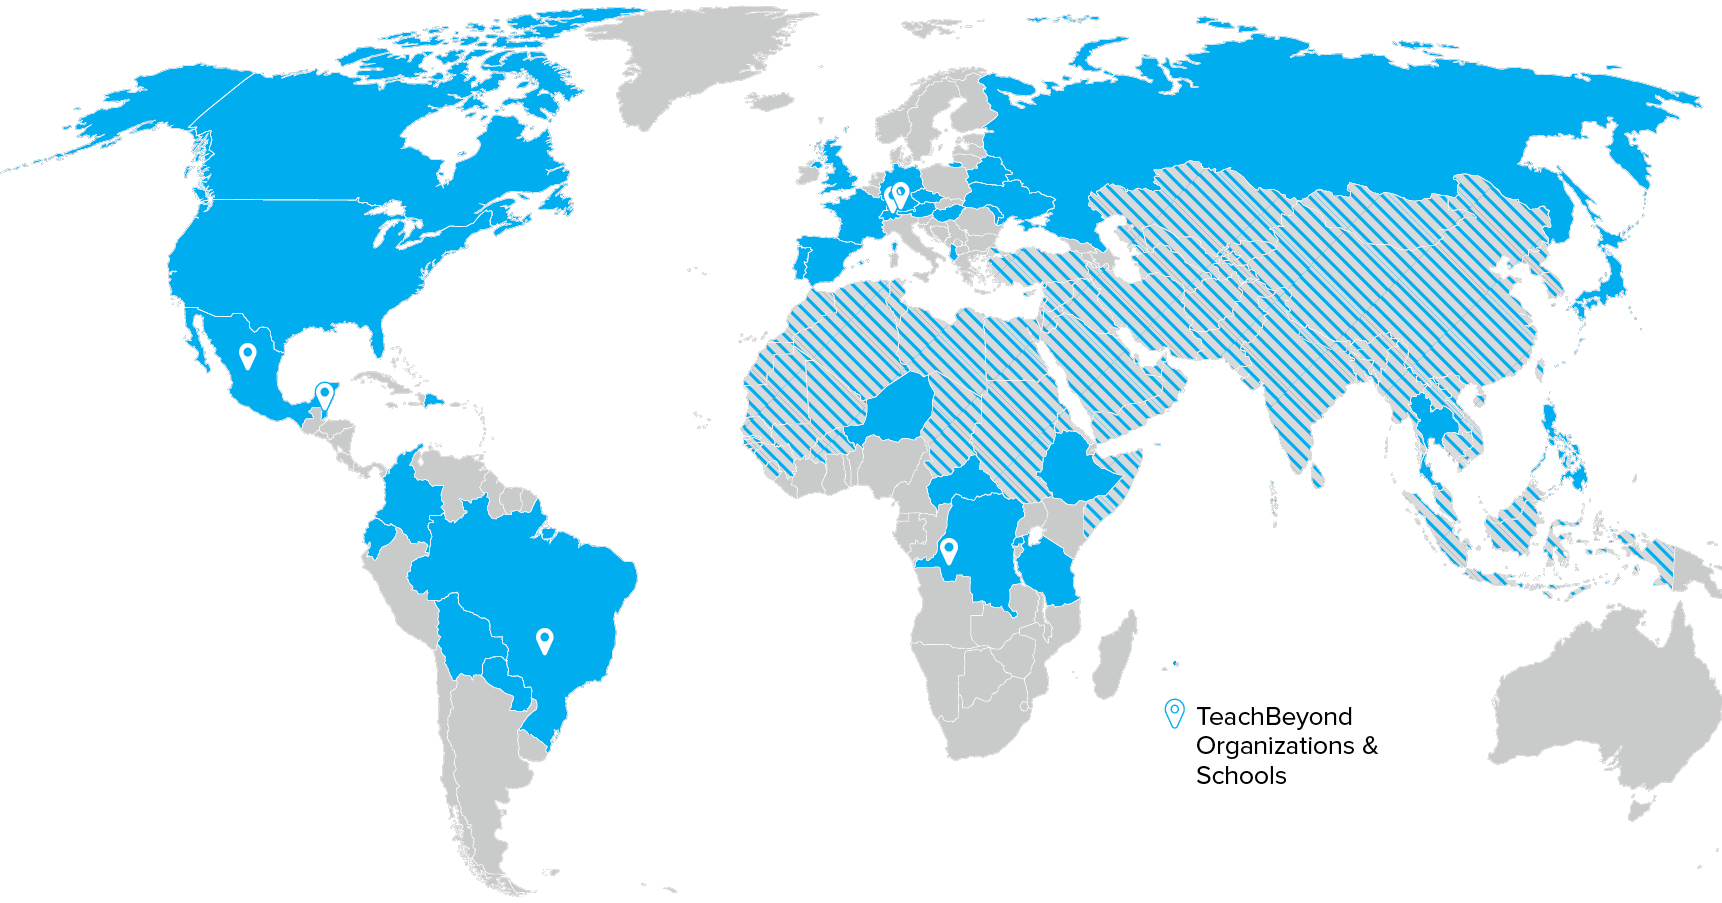 Areas where TeachBeyond serves